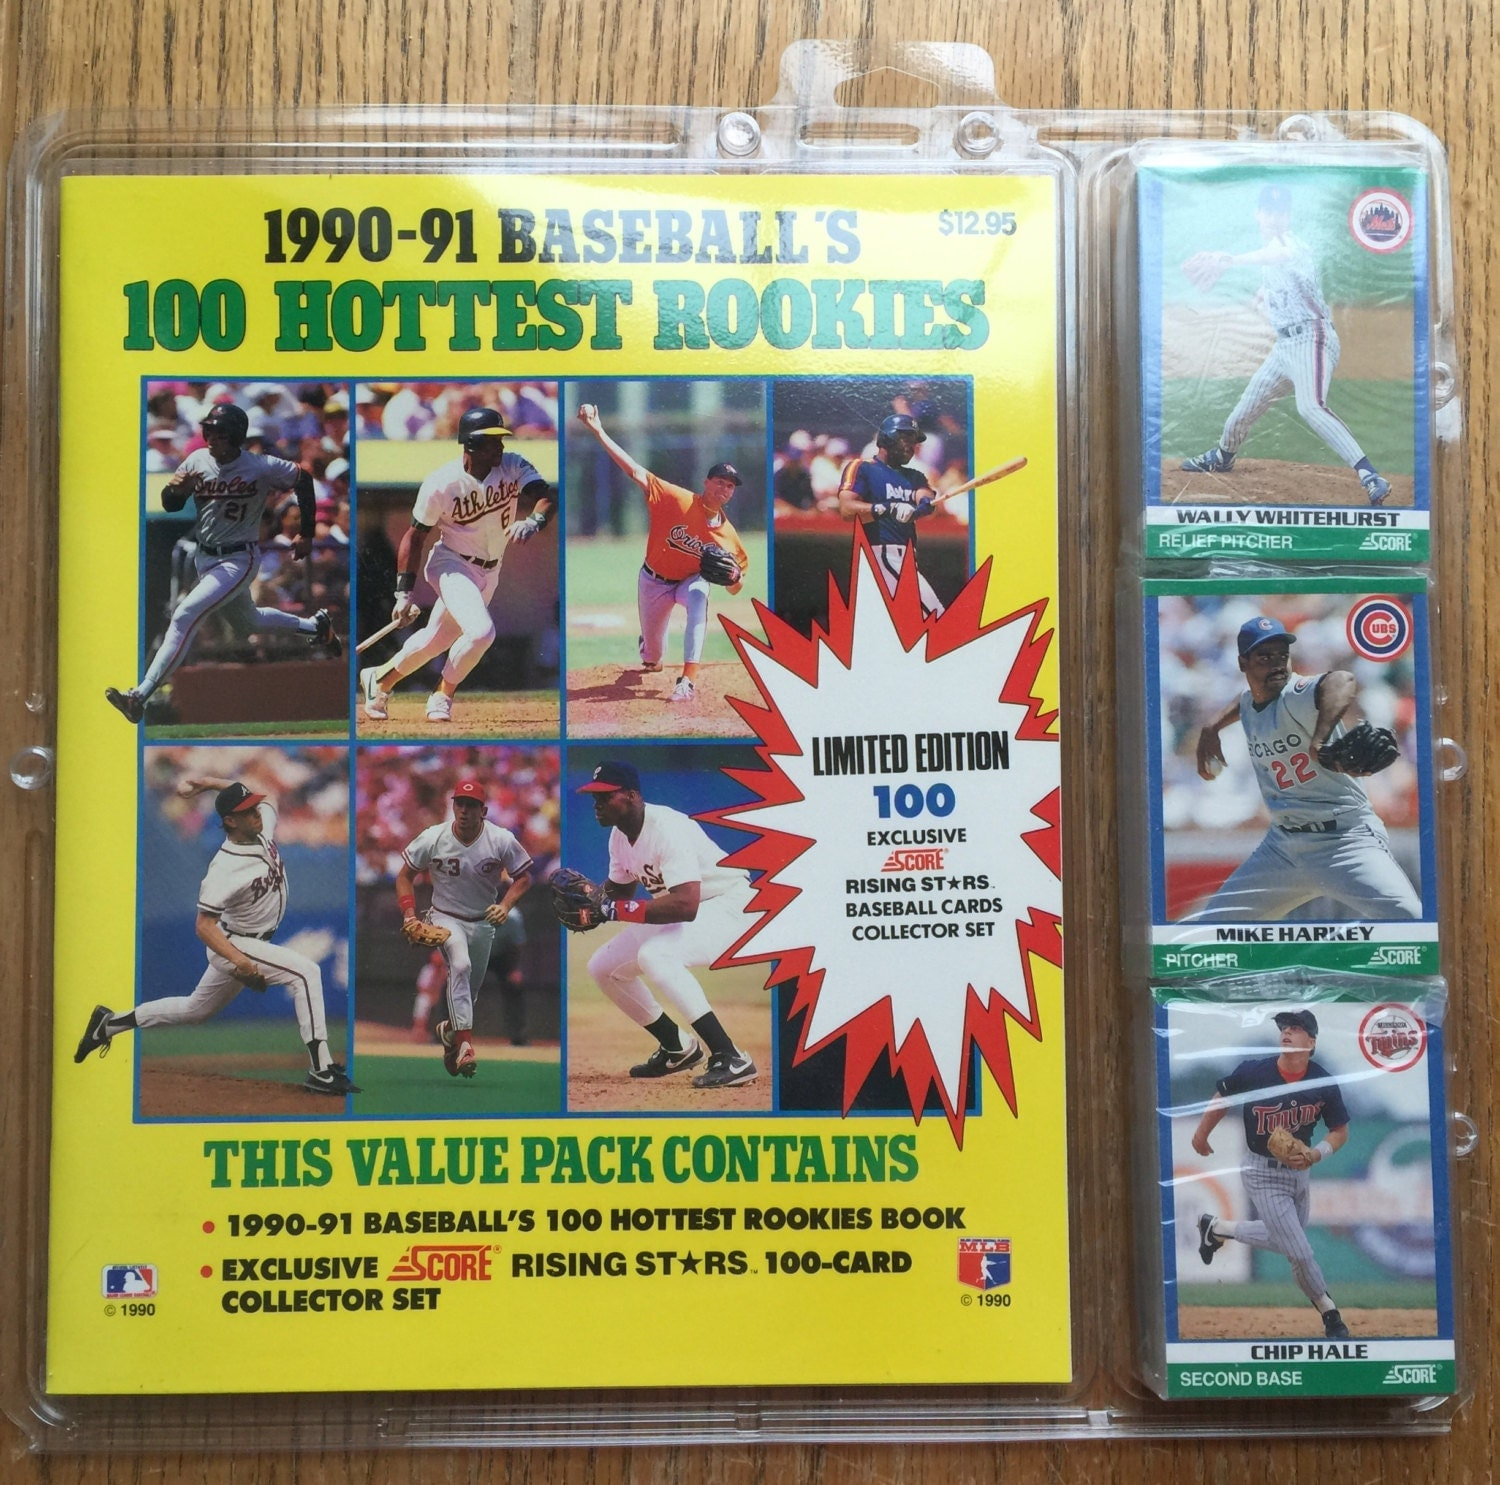 1990-91 Baseball's 100 Hottest Rookies Value Pack Score